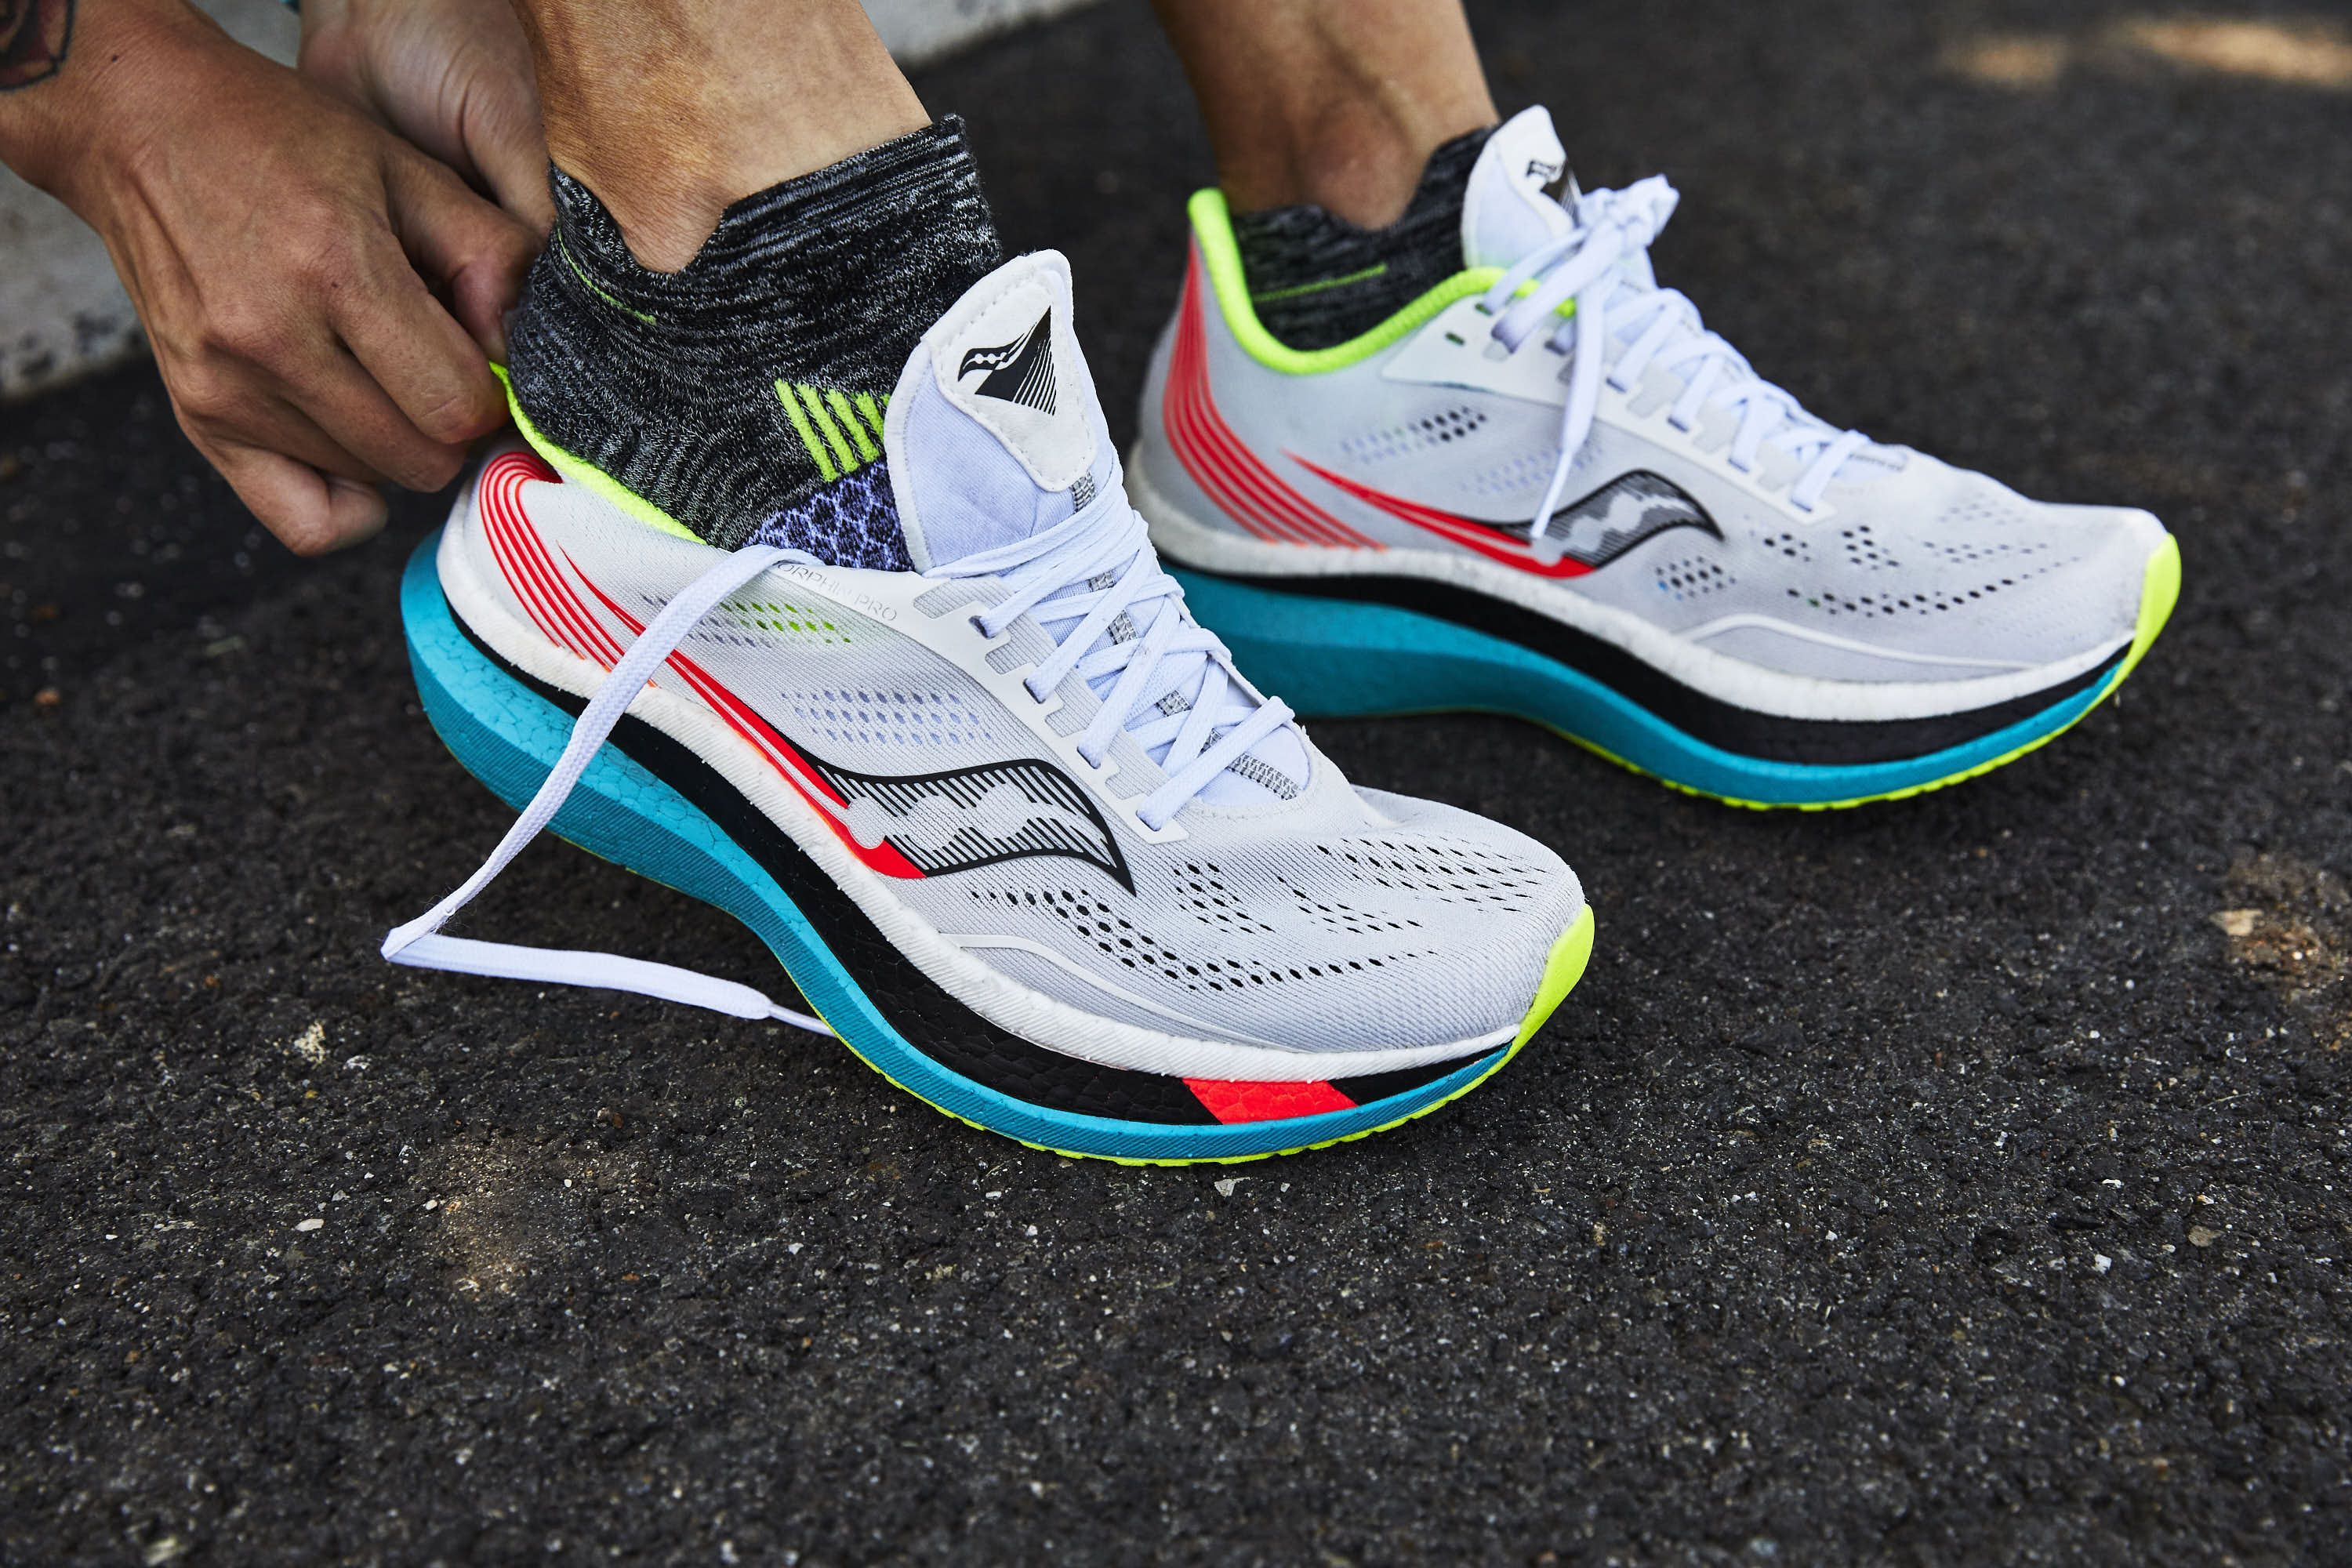 First Look: Saucony Endorphin Pro